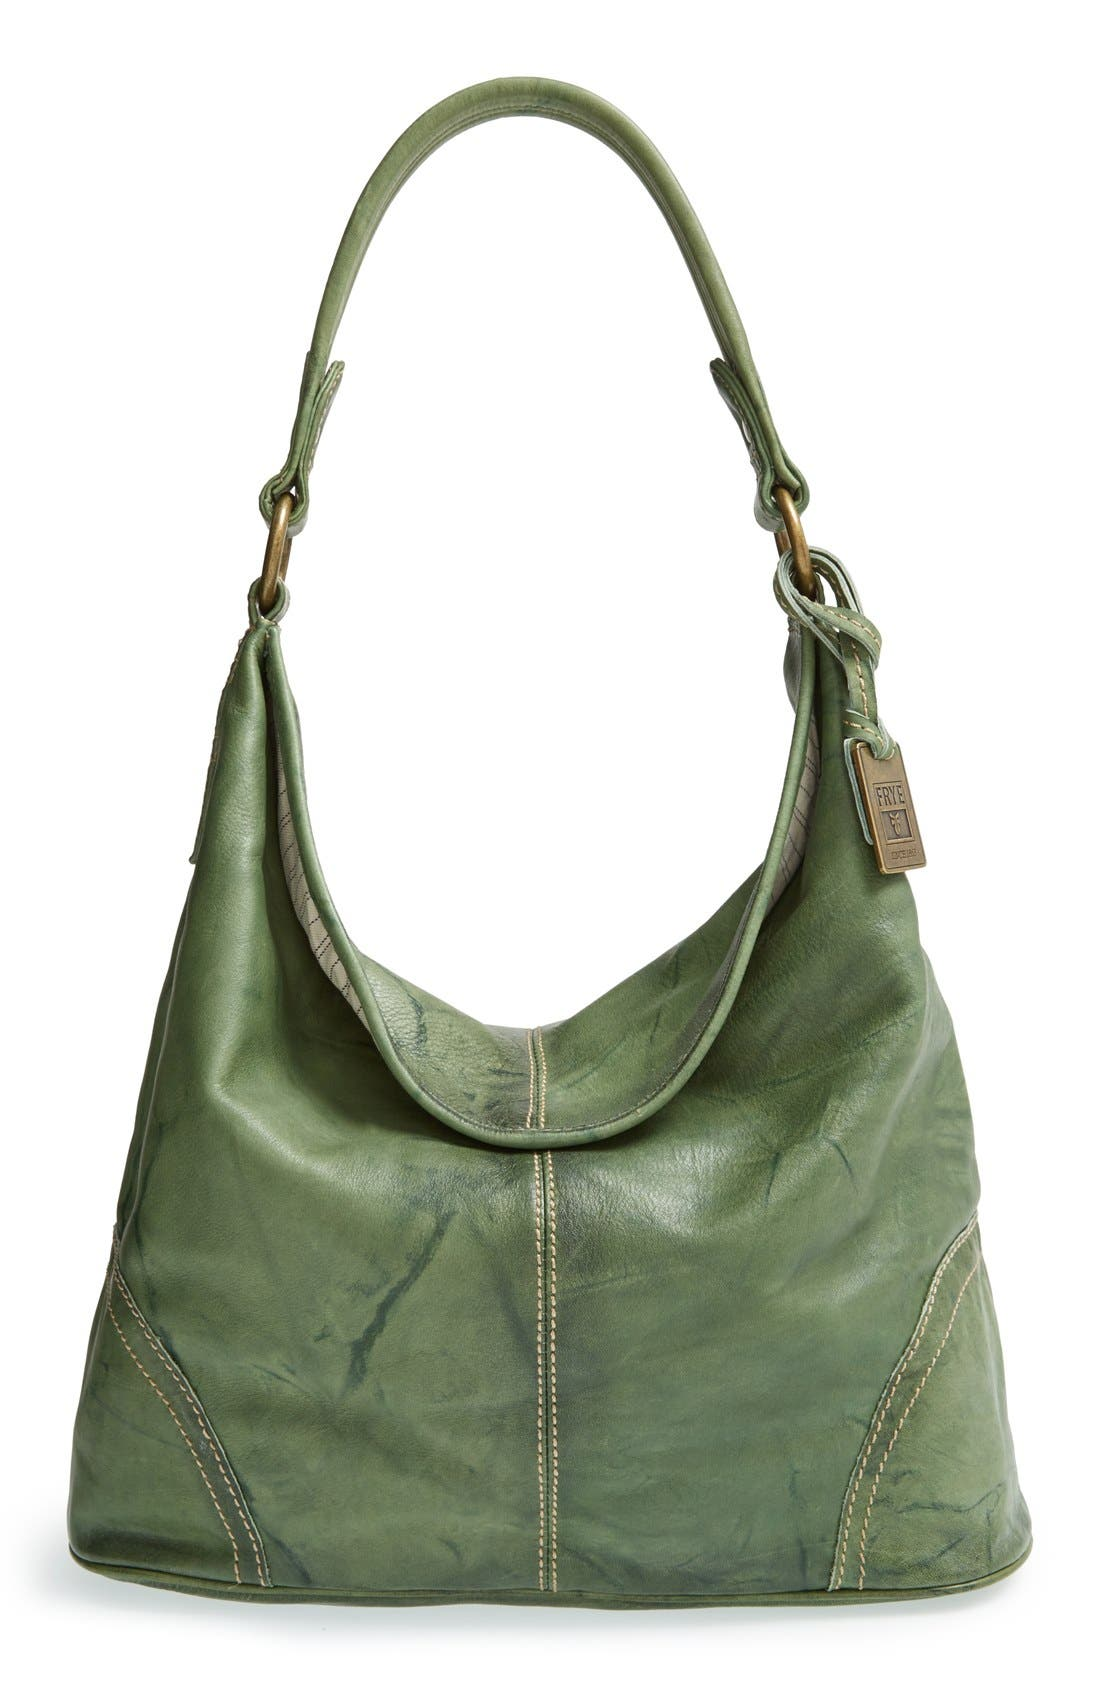 Main Image - Frye 'Campus' Leather Hobo